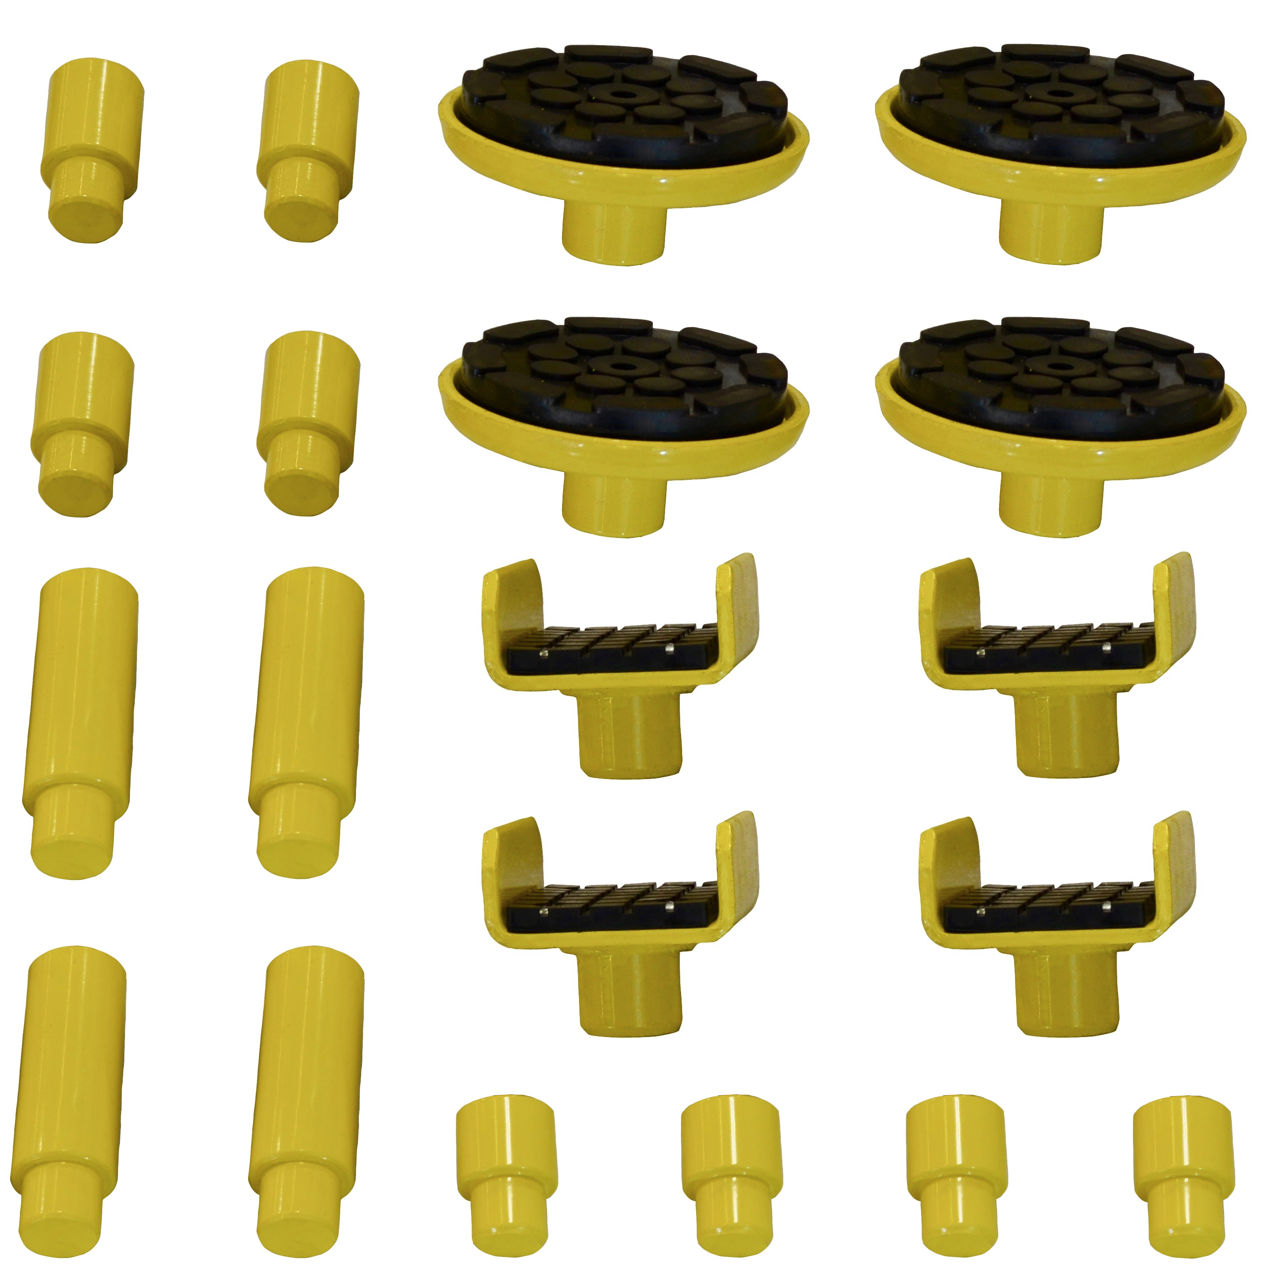 "W9-3D Complete Adapter Set Included - (4 each) 6"", 3"", 1 1/2"" Stack Adapters, Rubber Padded Lift Adapters, U-shaped 3"" Frame Adapters"